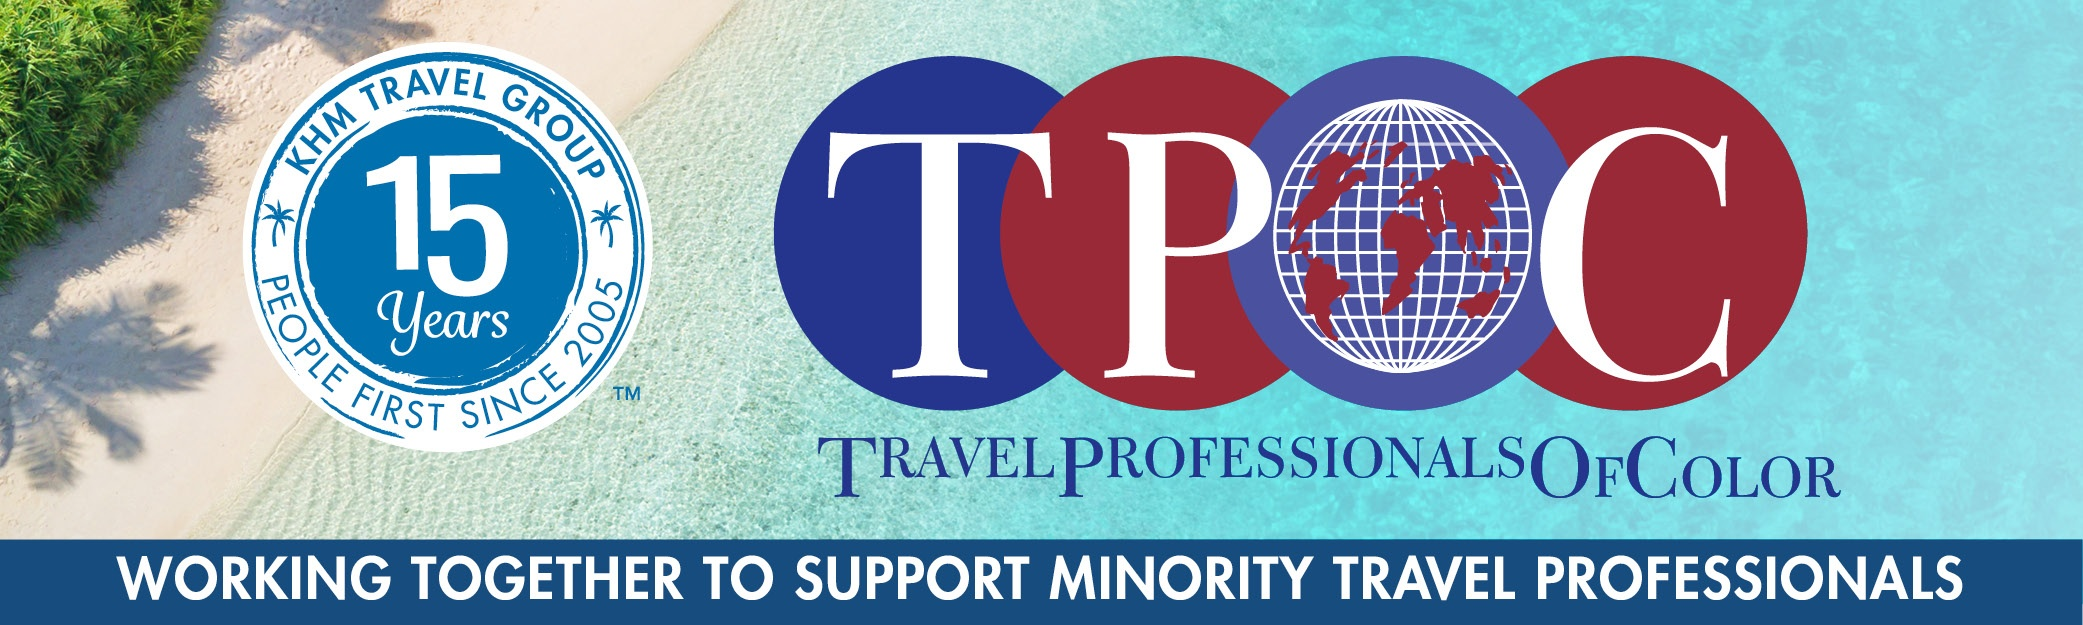 KHM Travel Group and TPOC Partnership